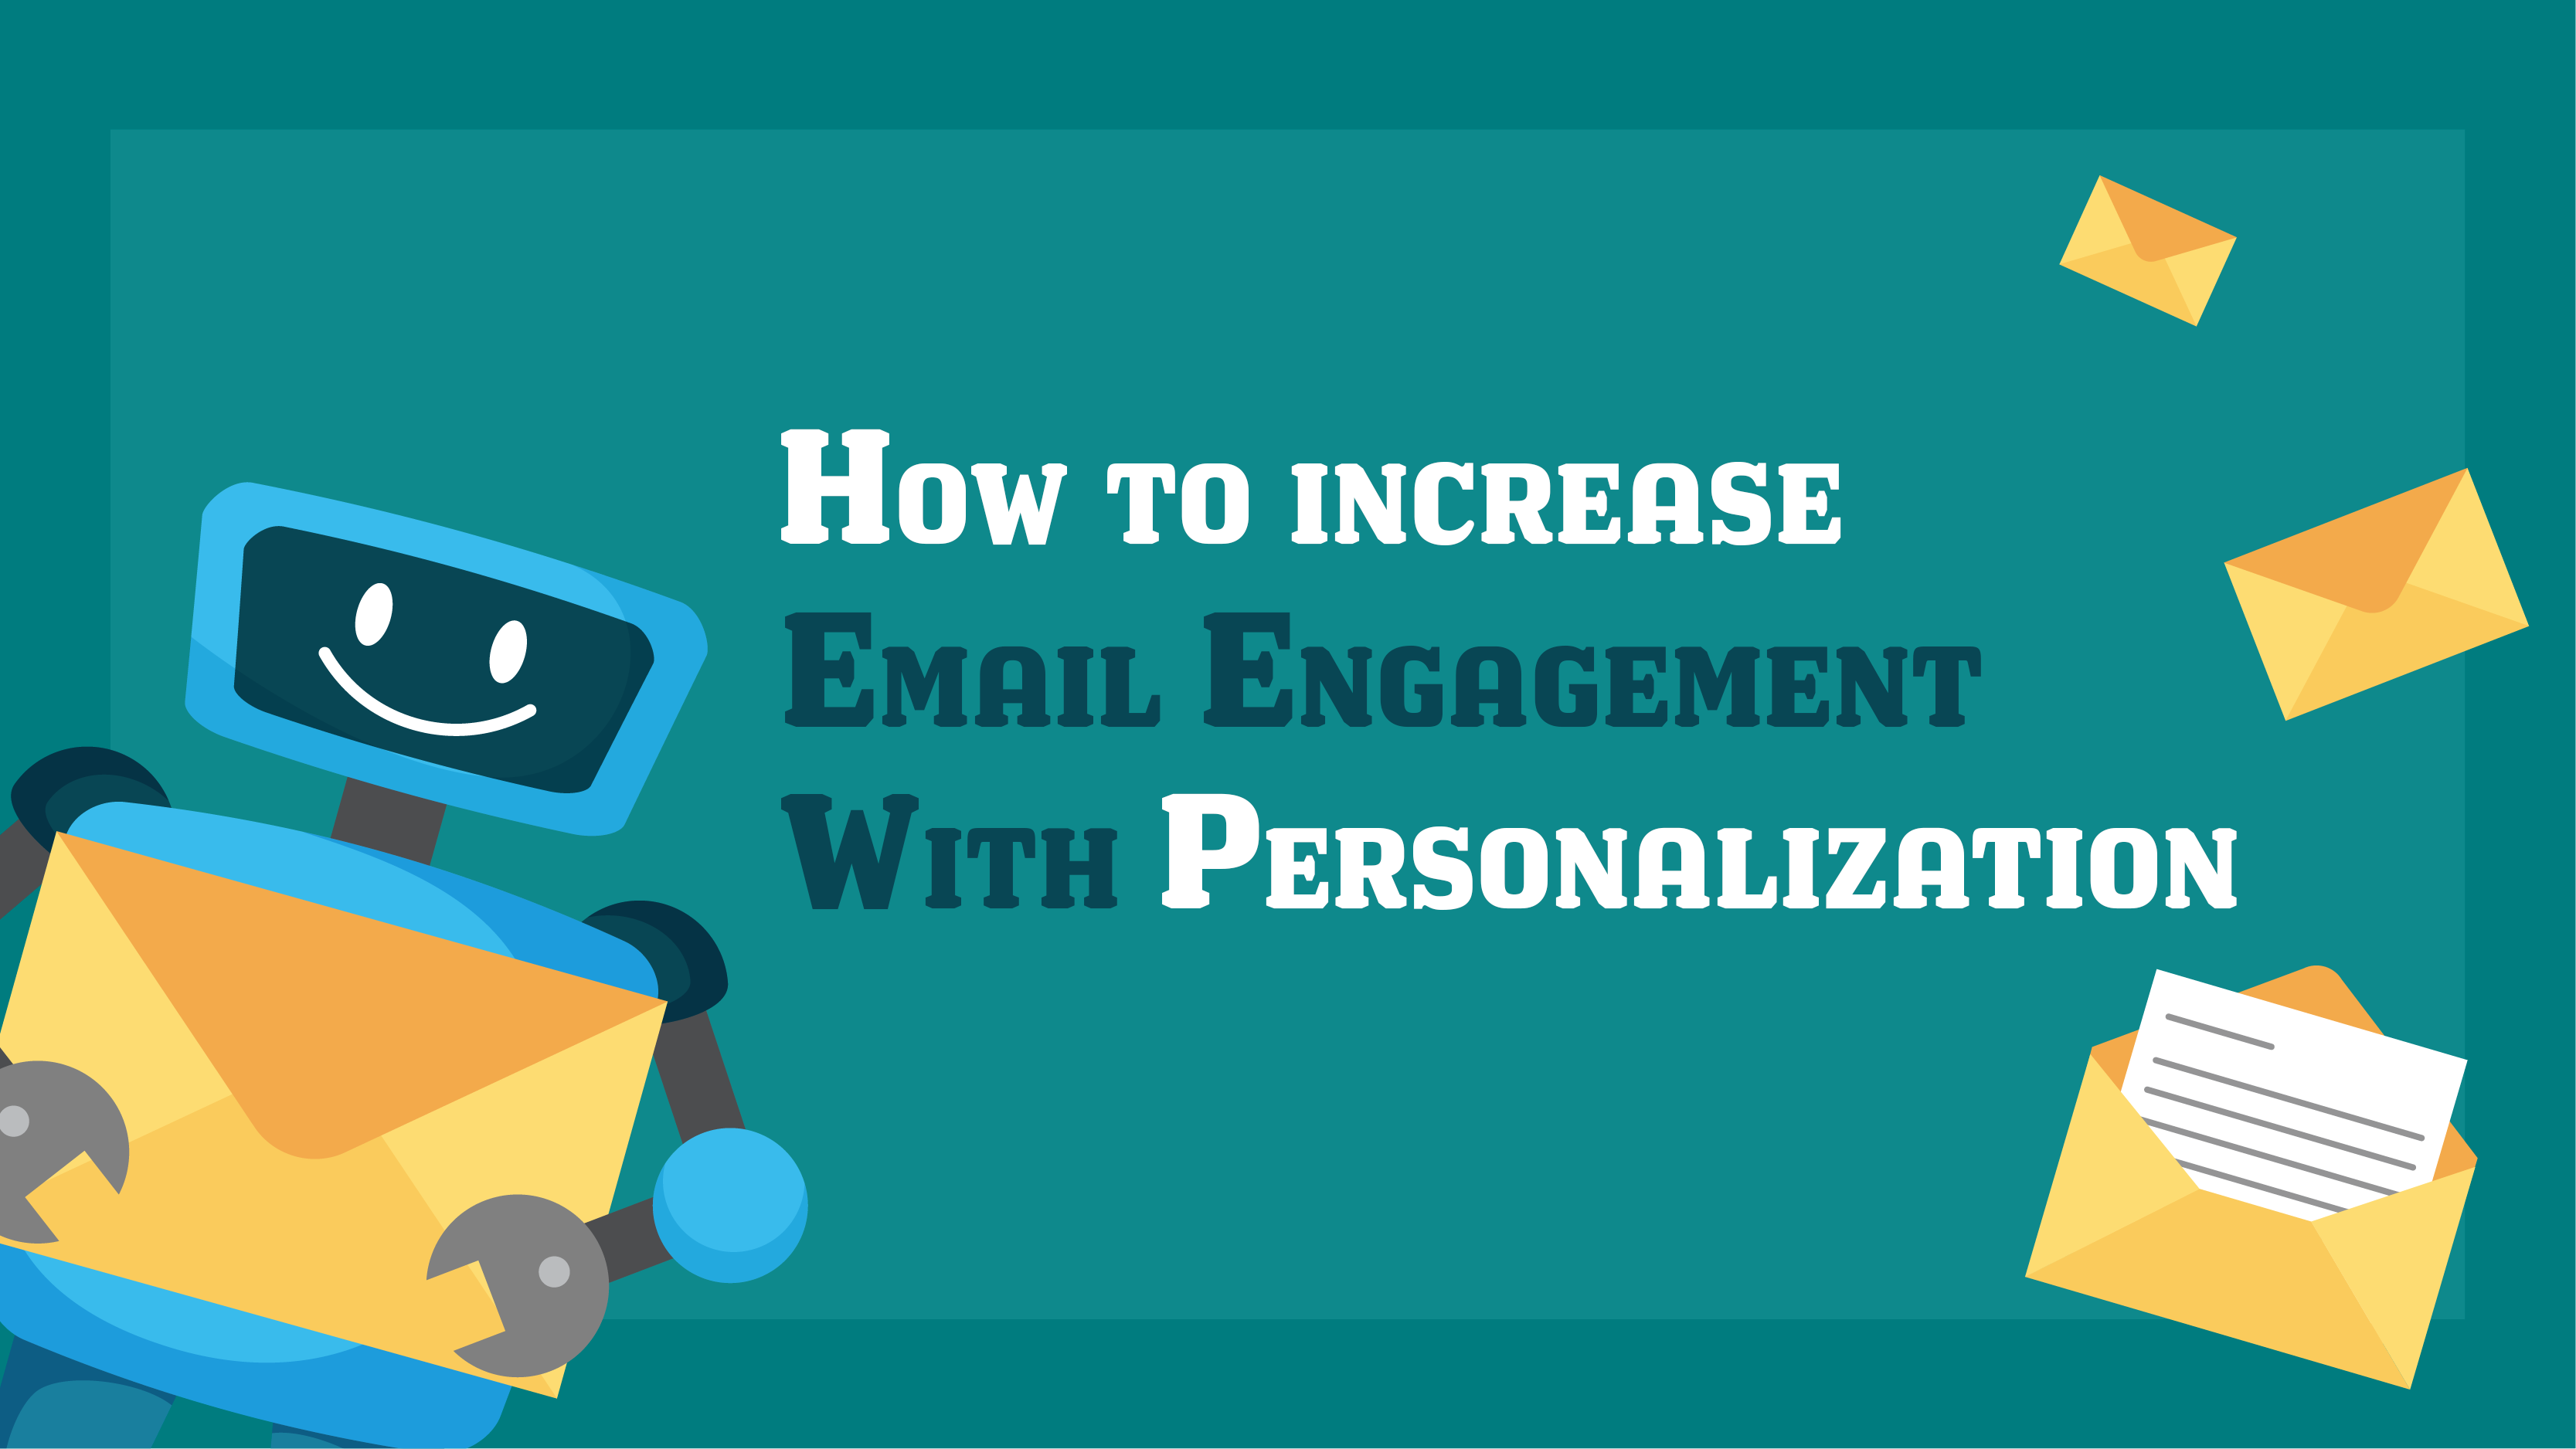 How to Increase Email Engagement with Personalization